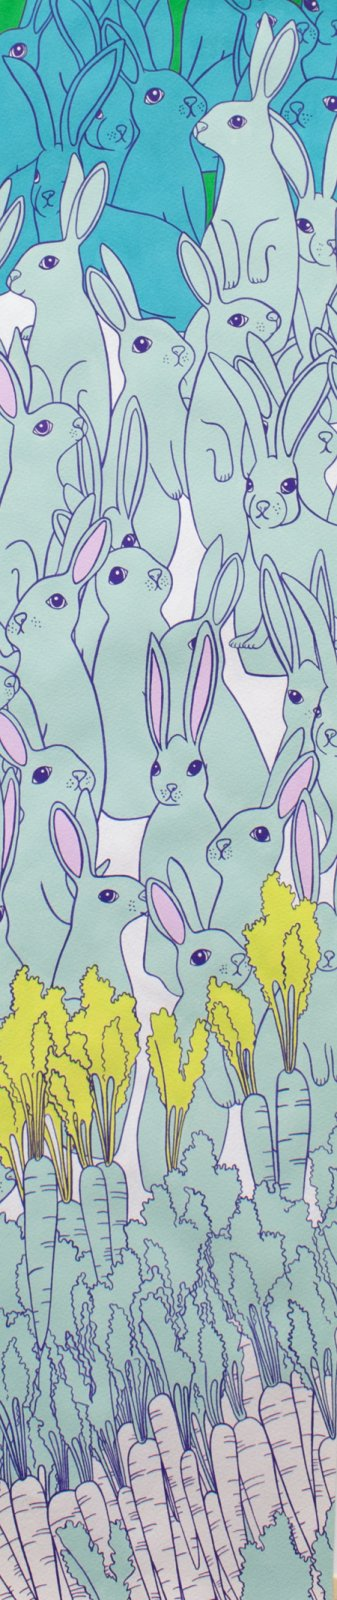 Hipster Hare Rabbits and Carrots in Aquas